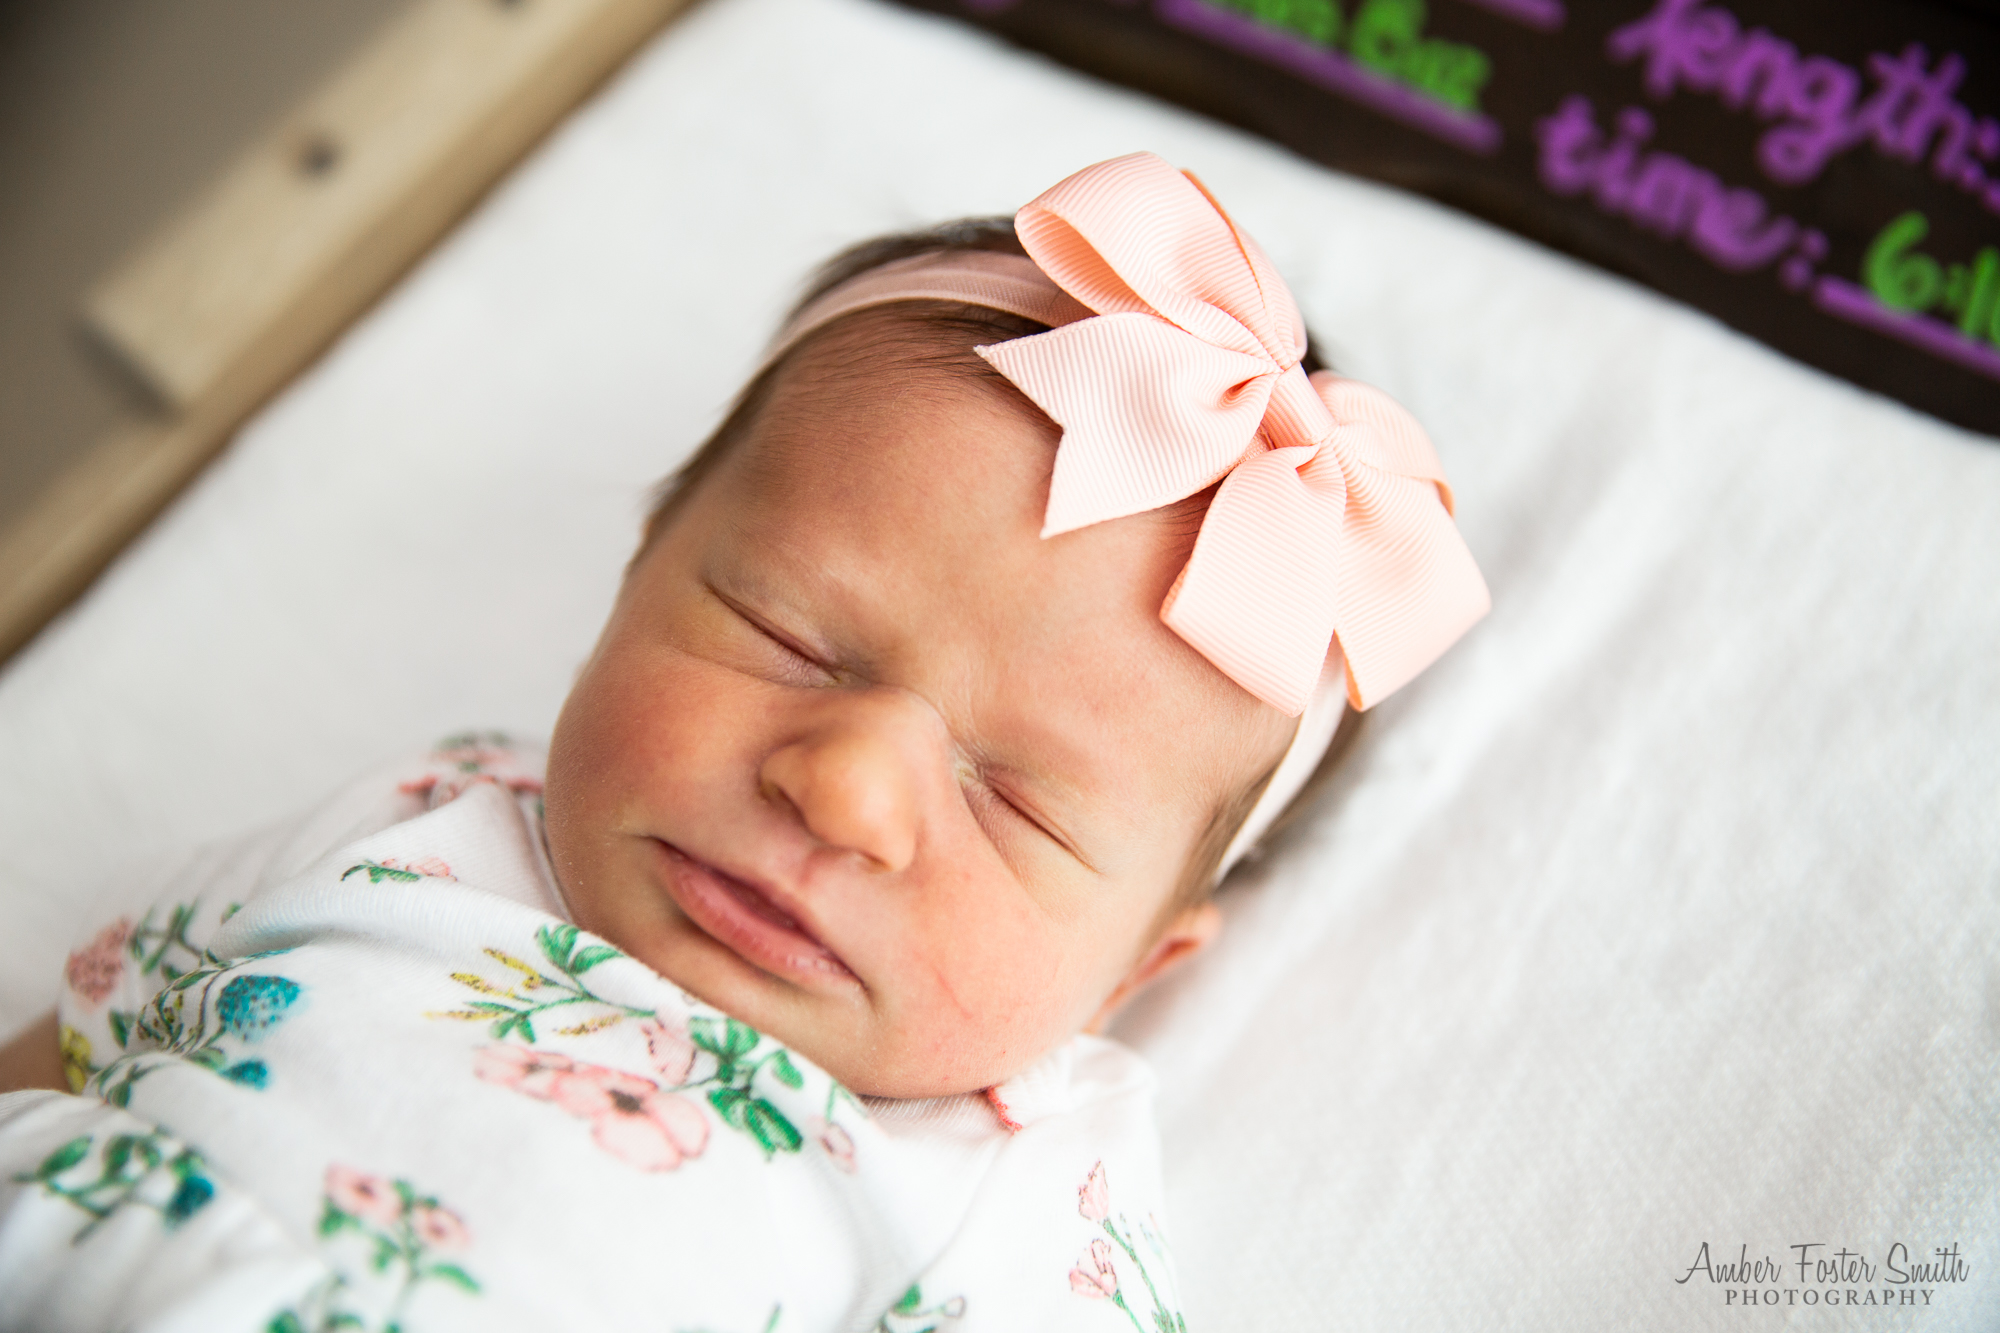 newborn baby wrapped in a blanket with a bow headband